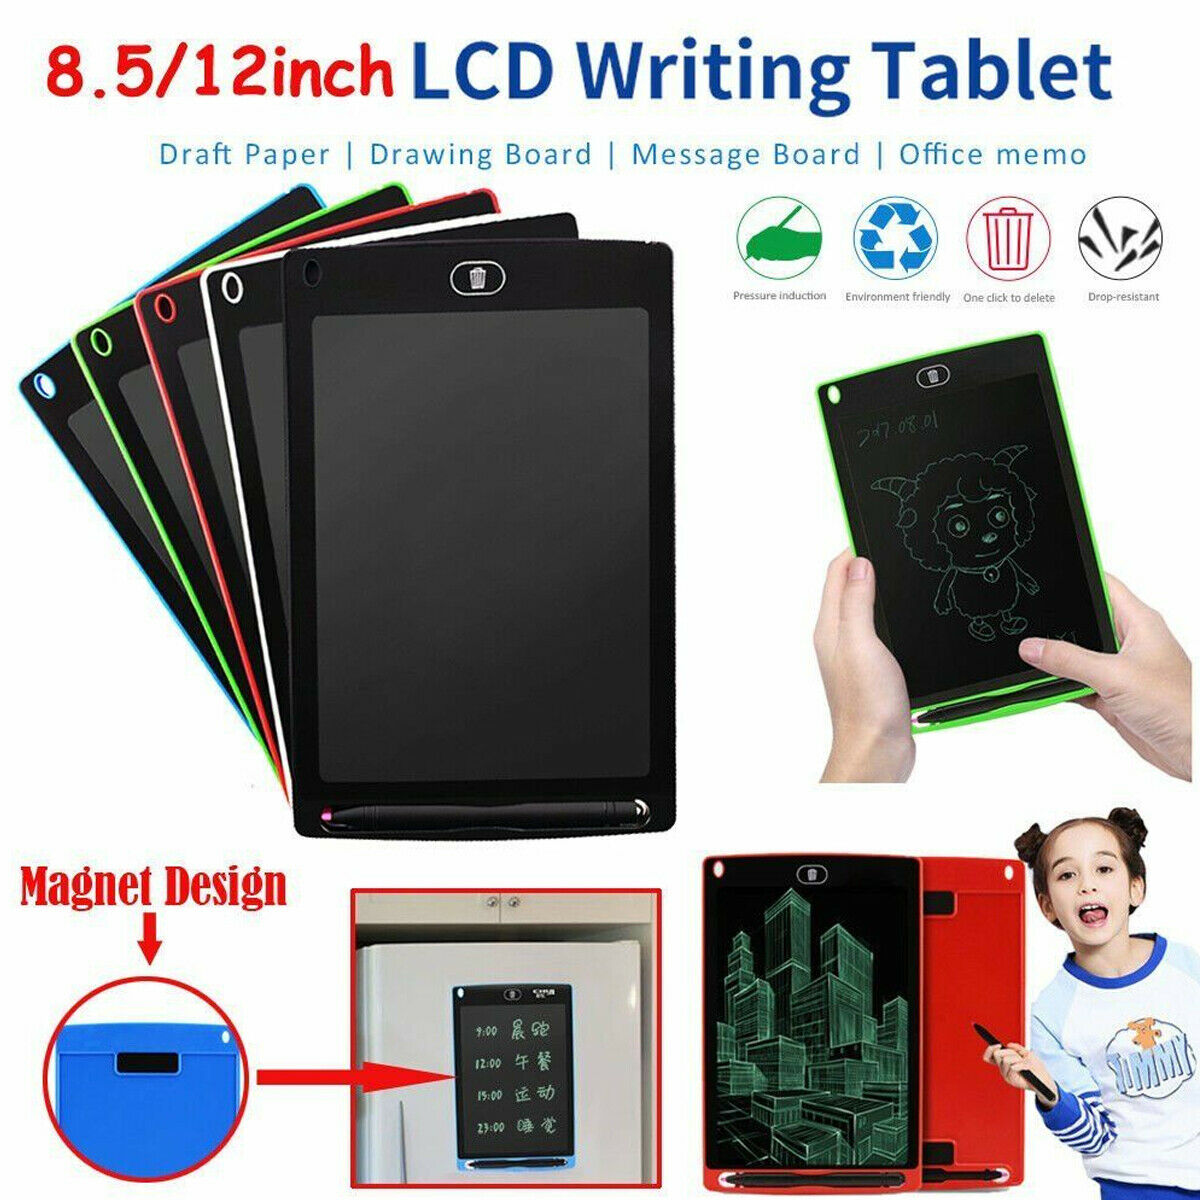 New Boogie Board Jot LCD Writing Tablet Black 8.5-Inch E-Writer Pad Sleeve Pen